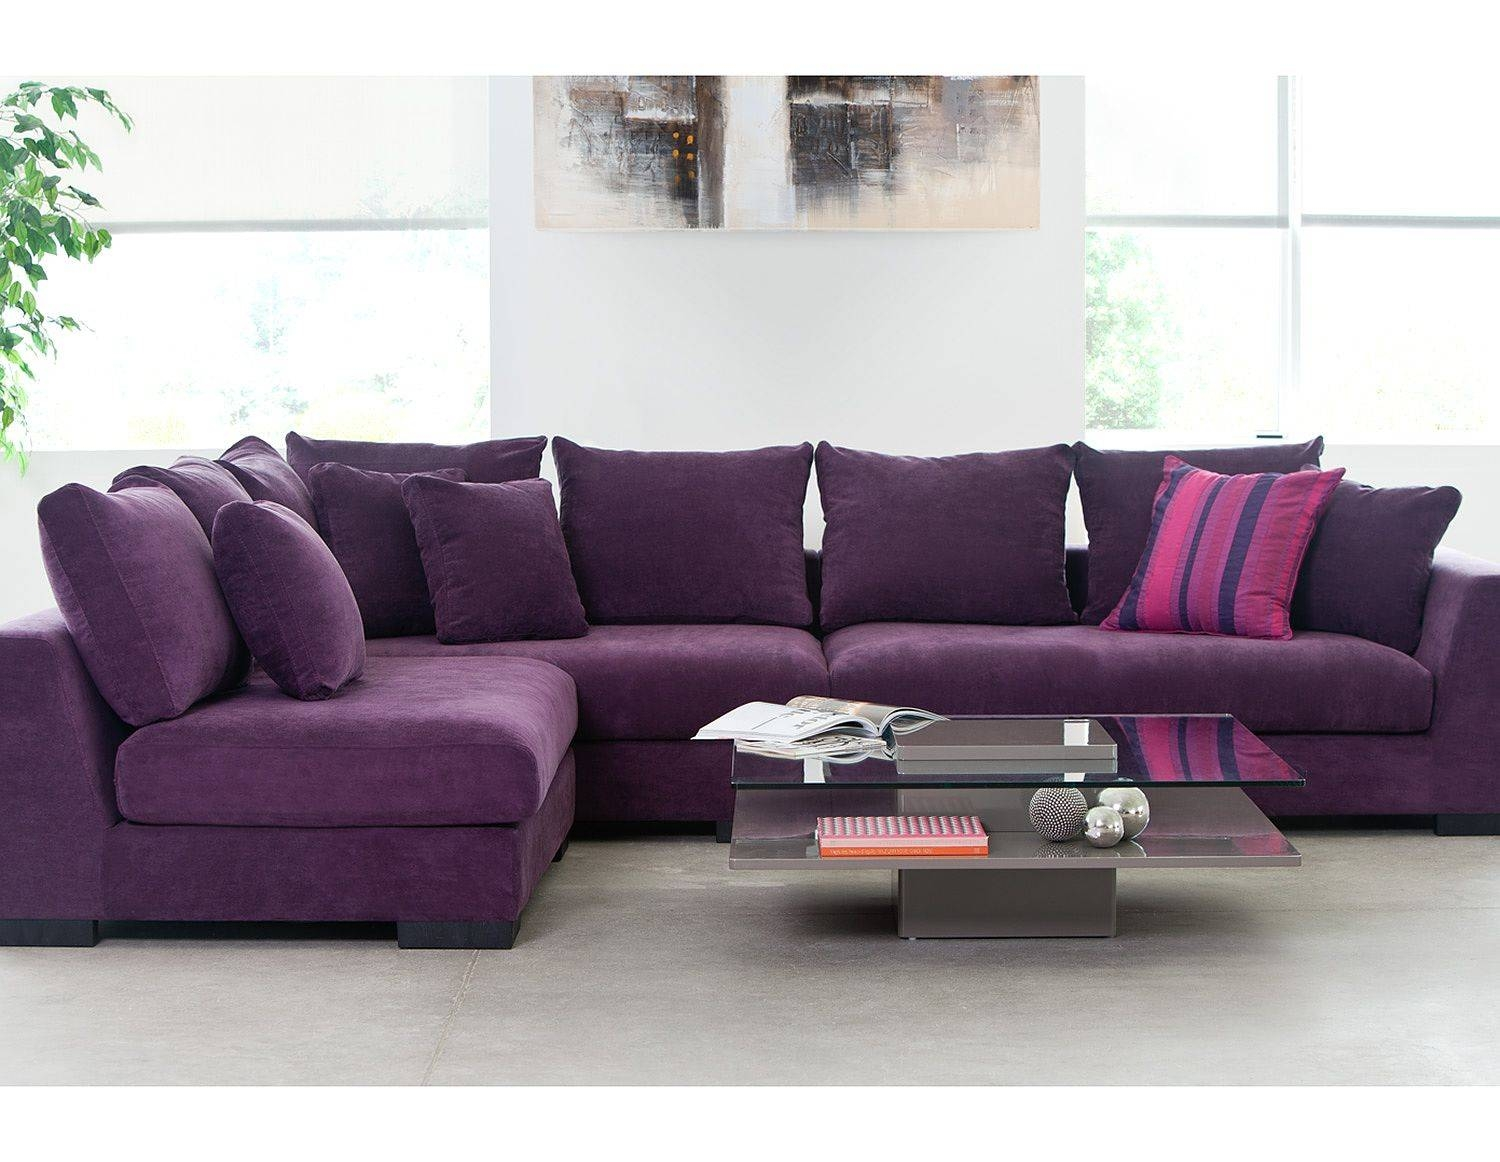 Sofas Center : Purple Sofa Set Sectional Leather Sofas For Sale with regard to Eggplant Sectional Sofa (Image 30 of 30)